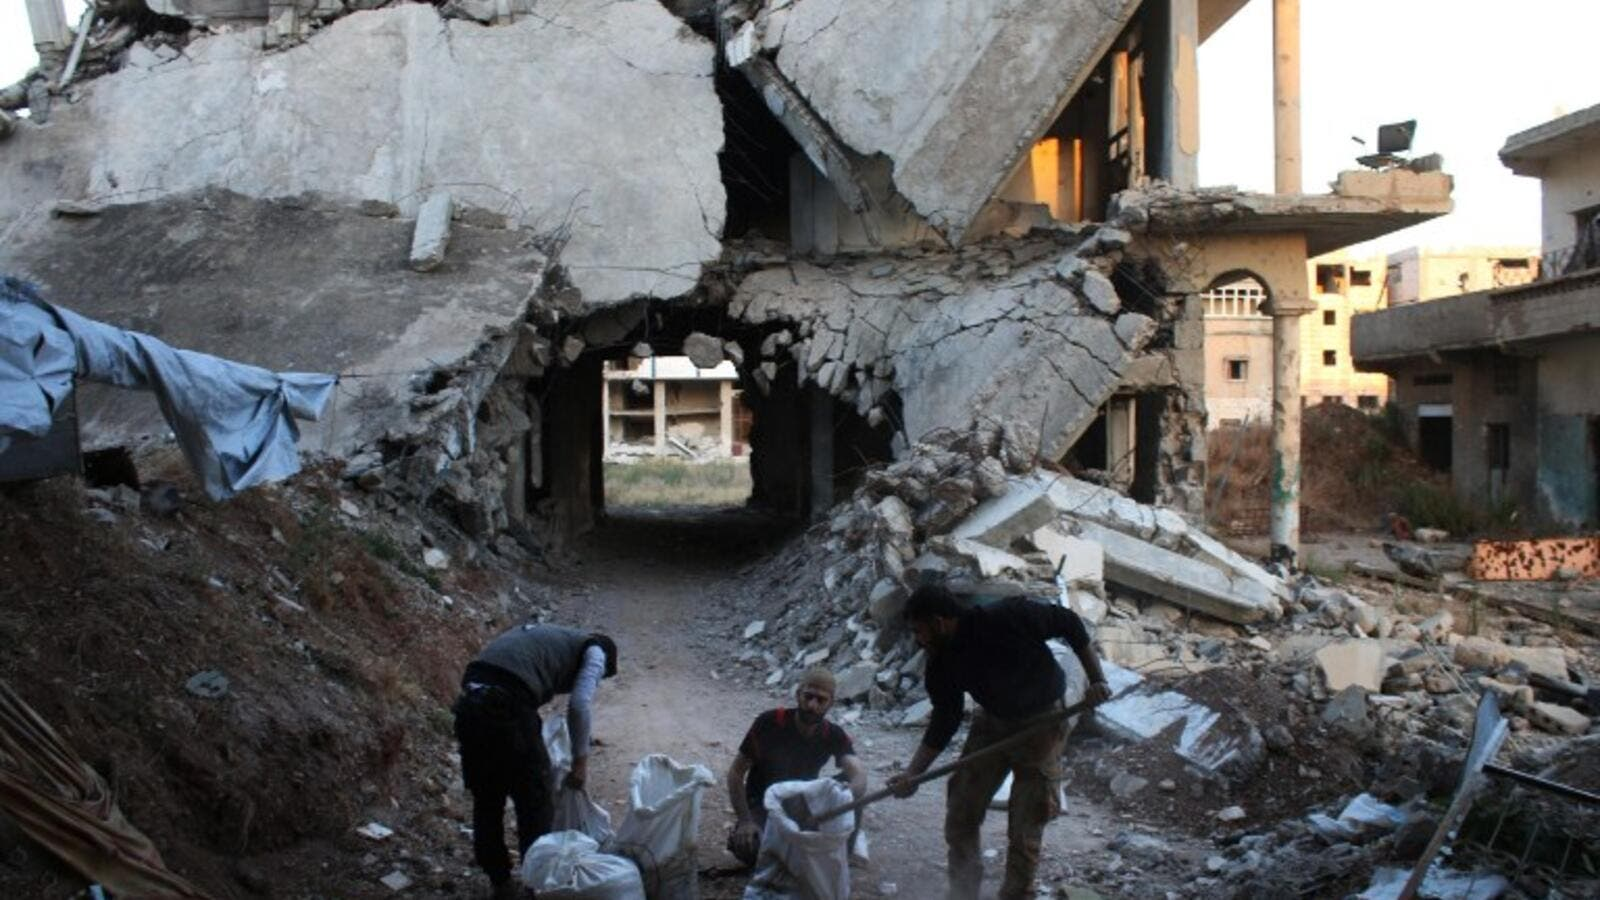 Rebel fighters fill bags with rubble from destroyed buildings they will use to strengthen a front-line position in a rebel-held area of Daraa, southern Syria, on May 18, 2016. (AFP/Mohammed Abazeed)